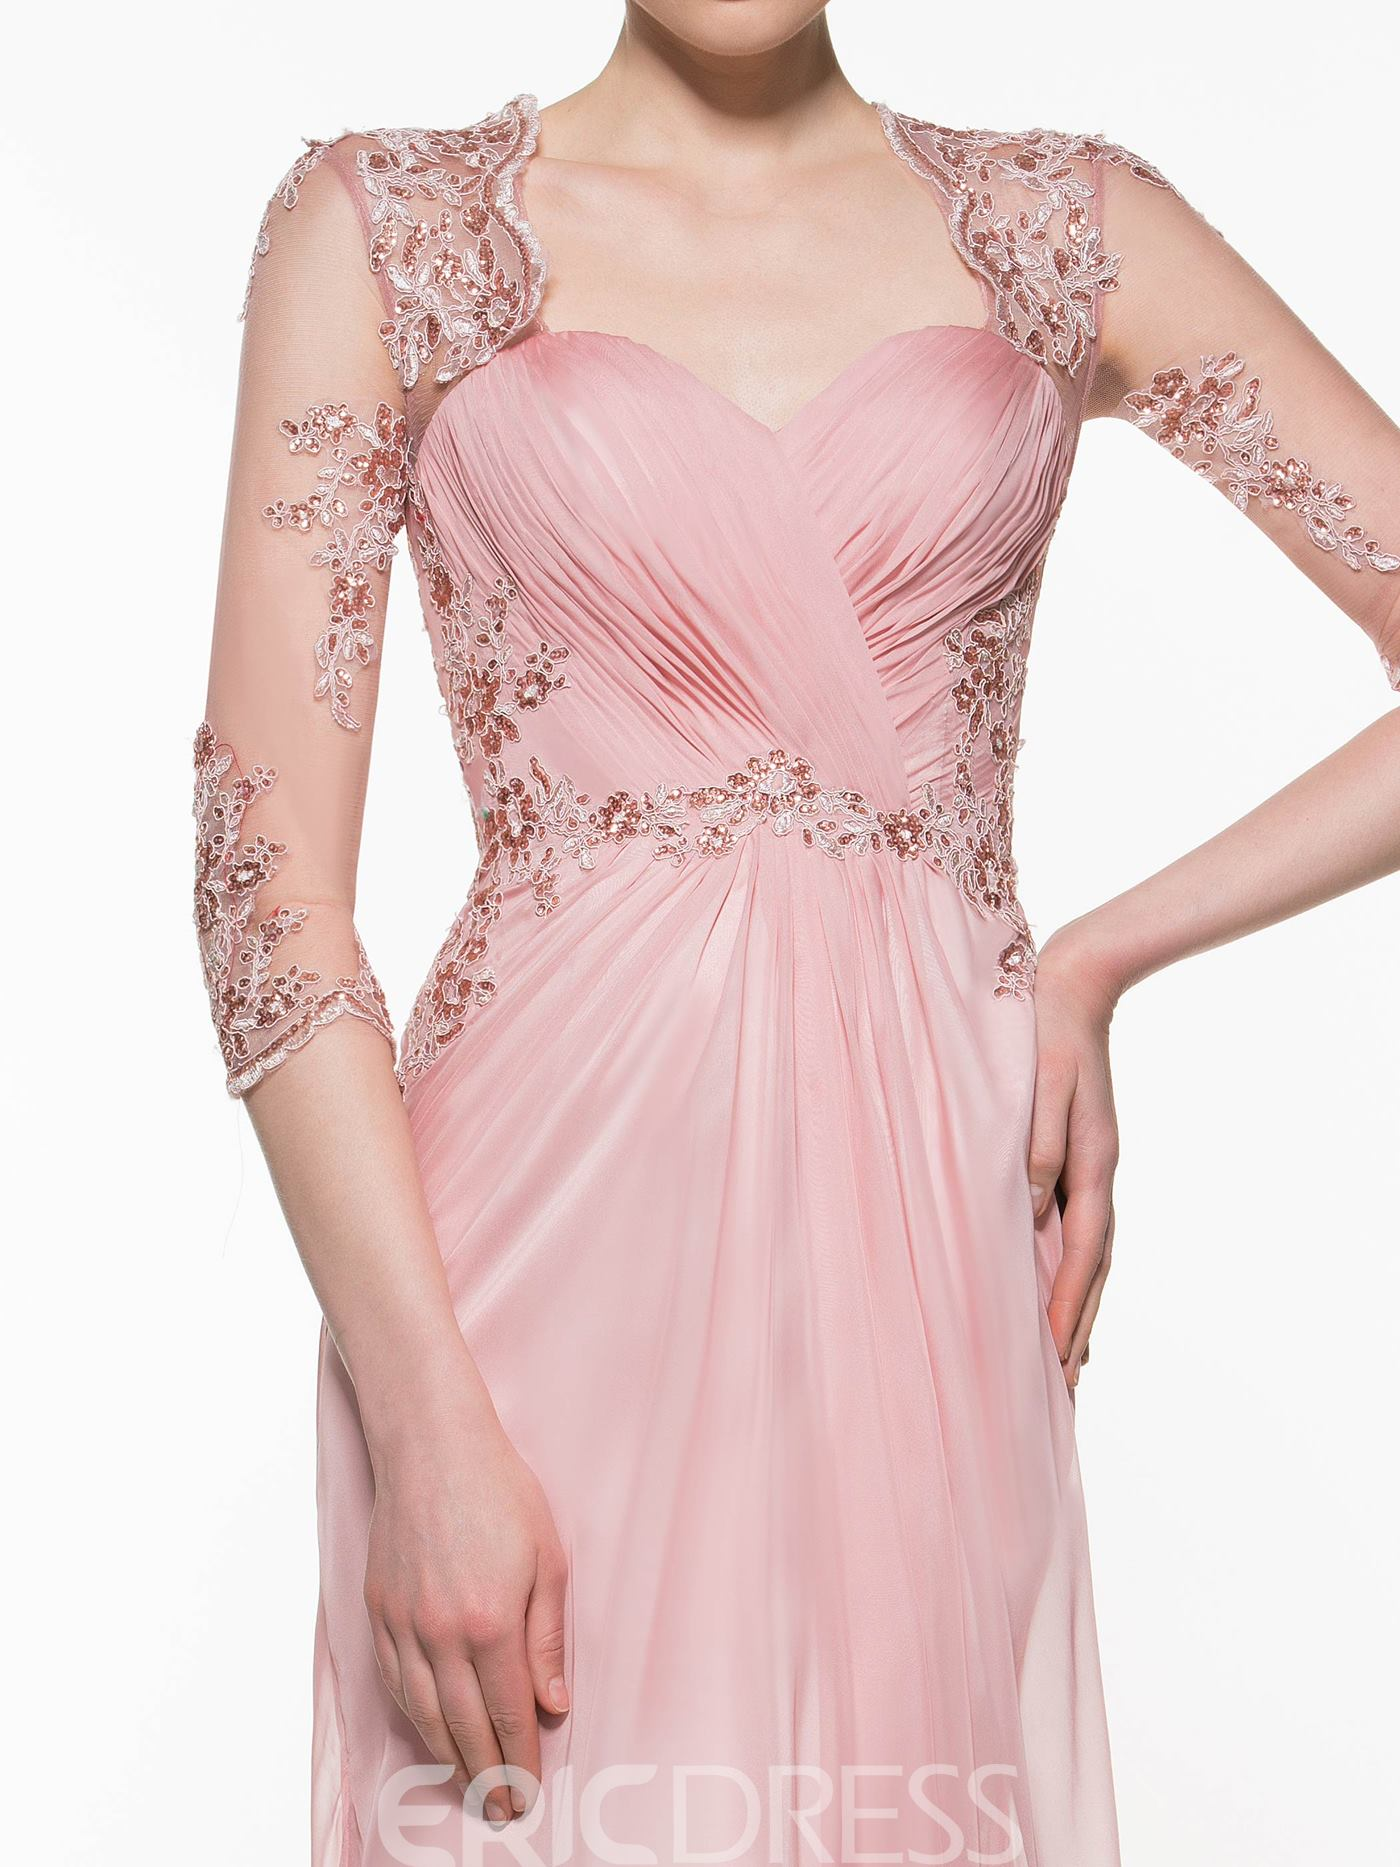 Ericdress Elegant Appliques Beaded A Line Long Mother Of The Bride Dress